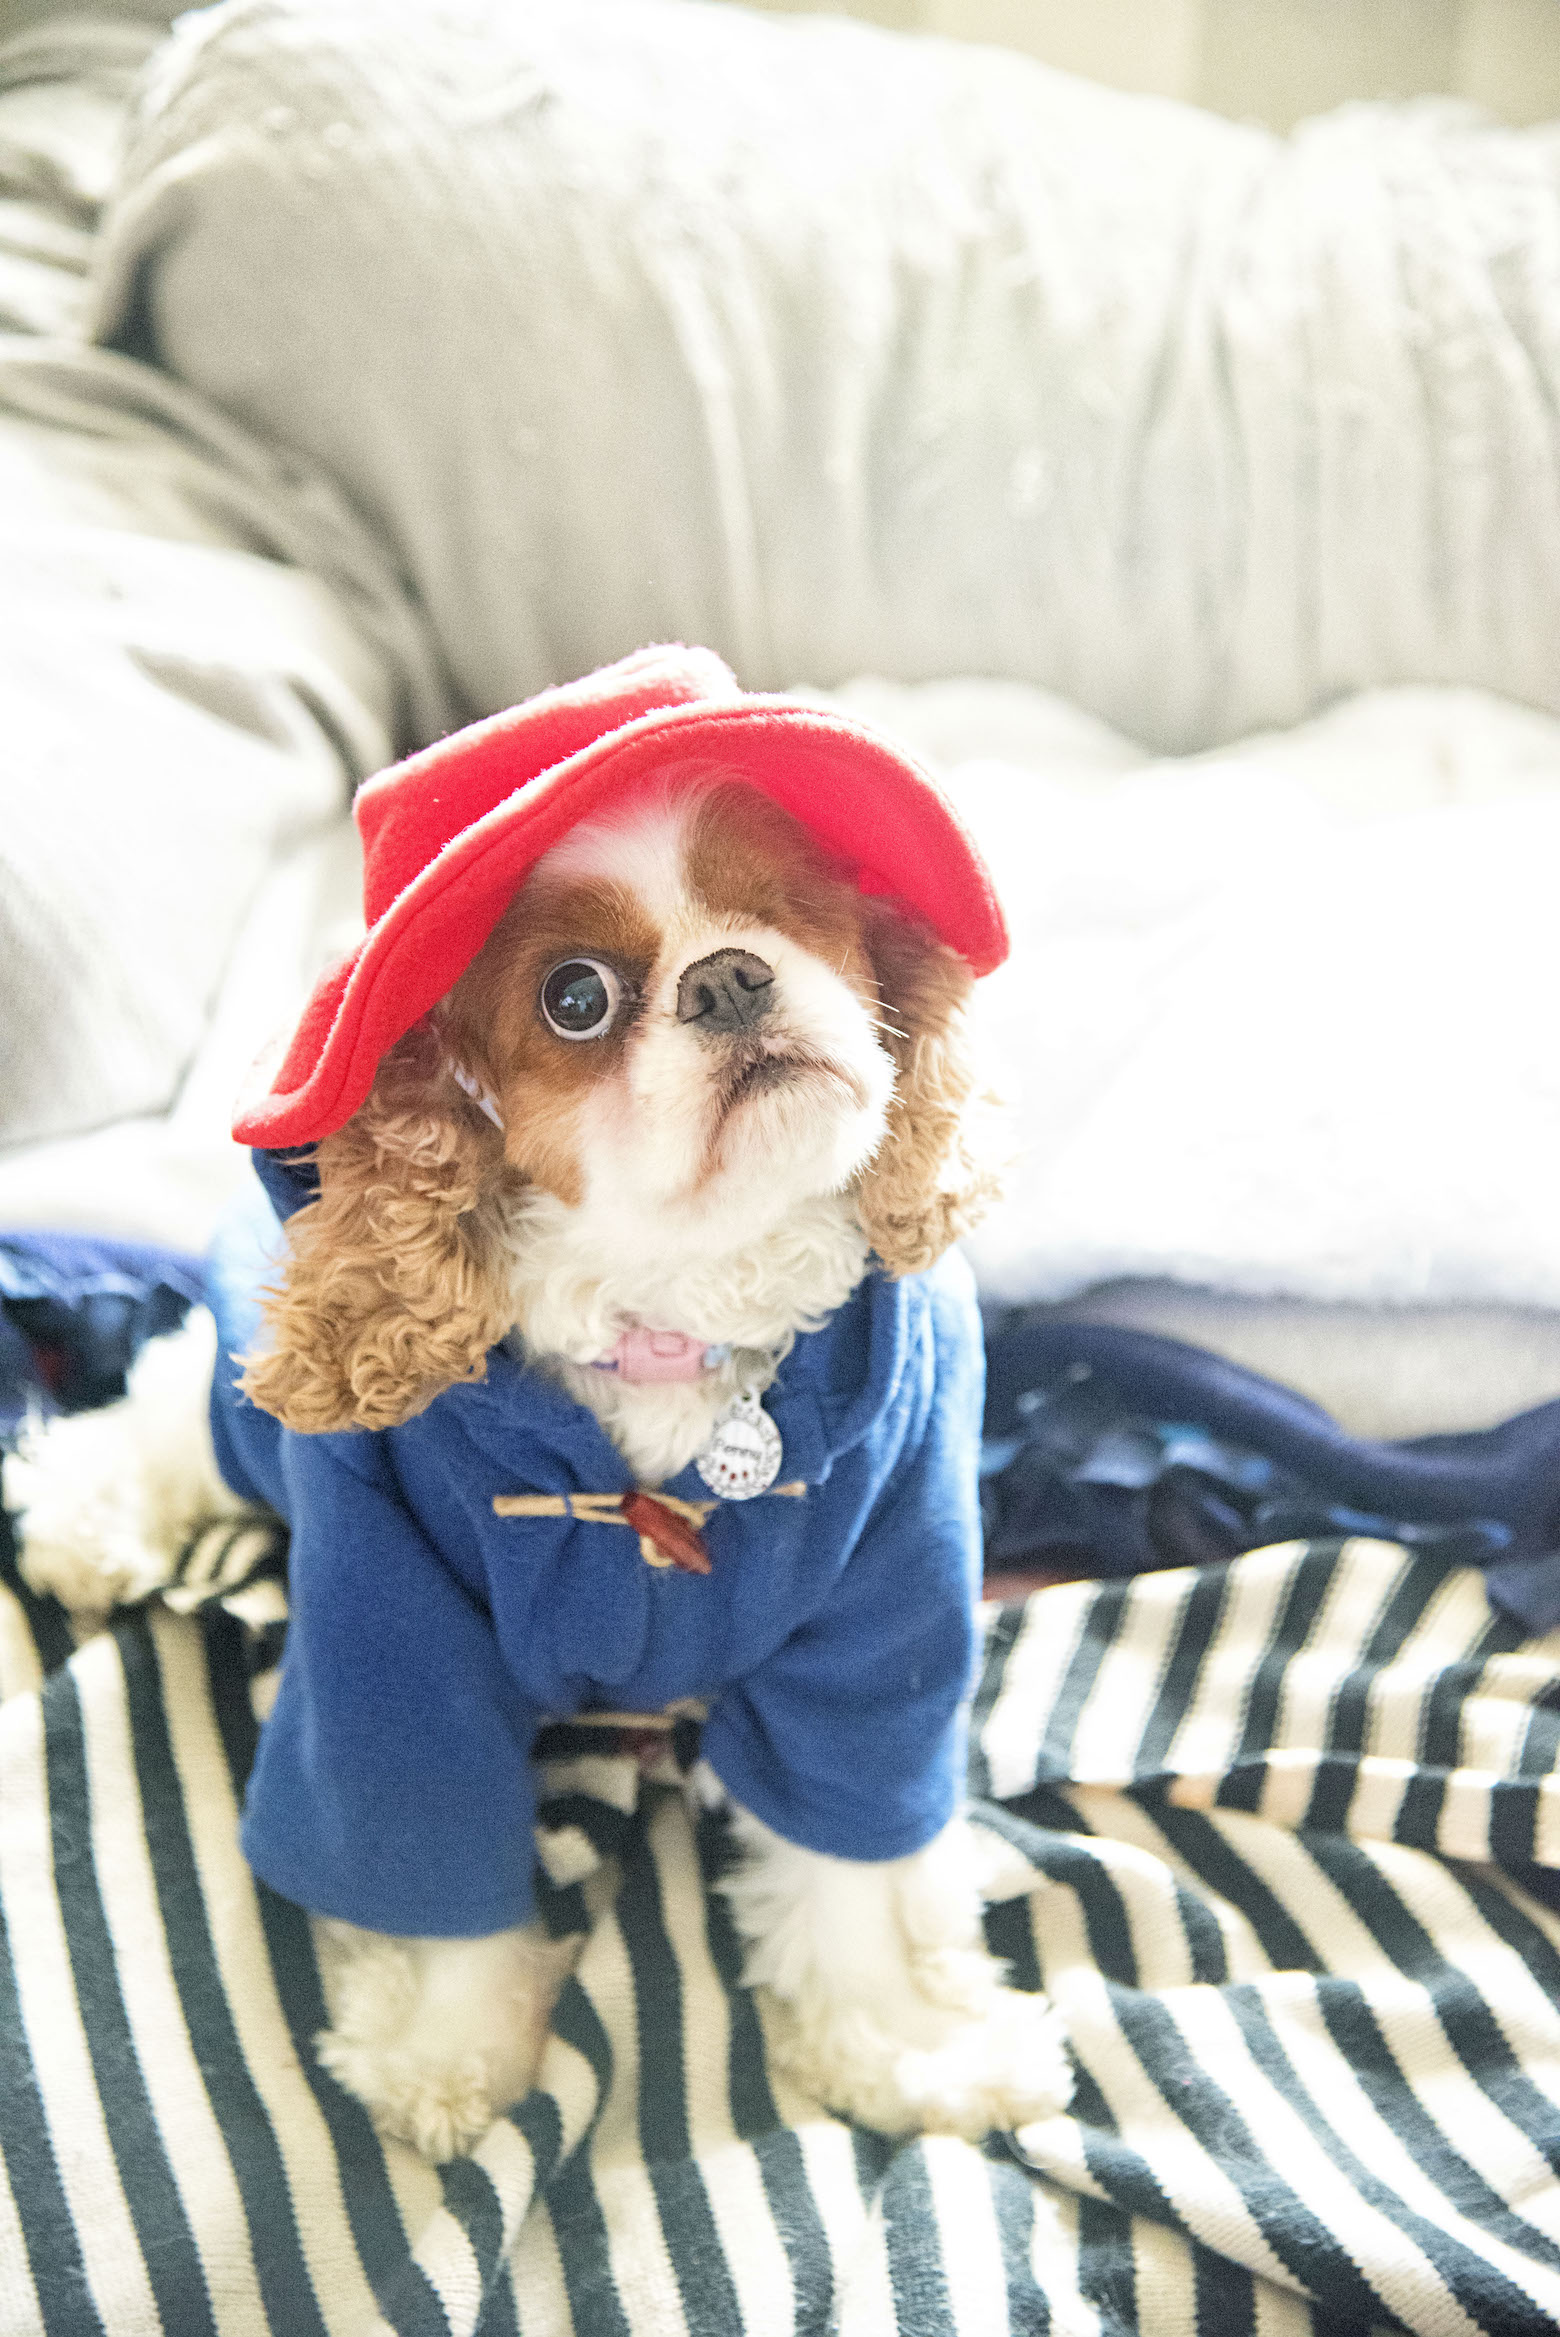 Penny as Paddington